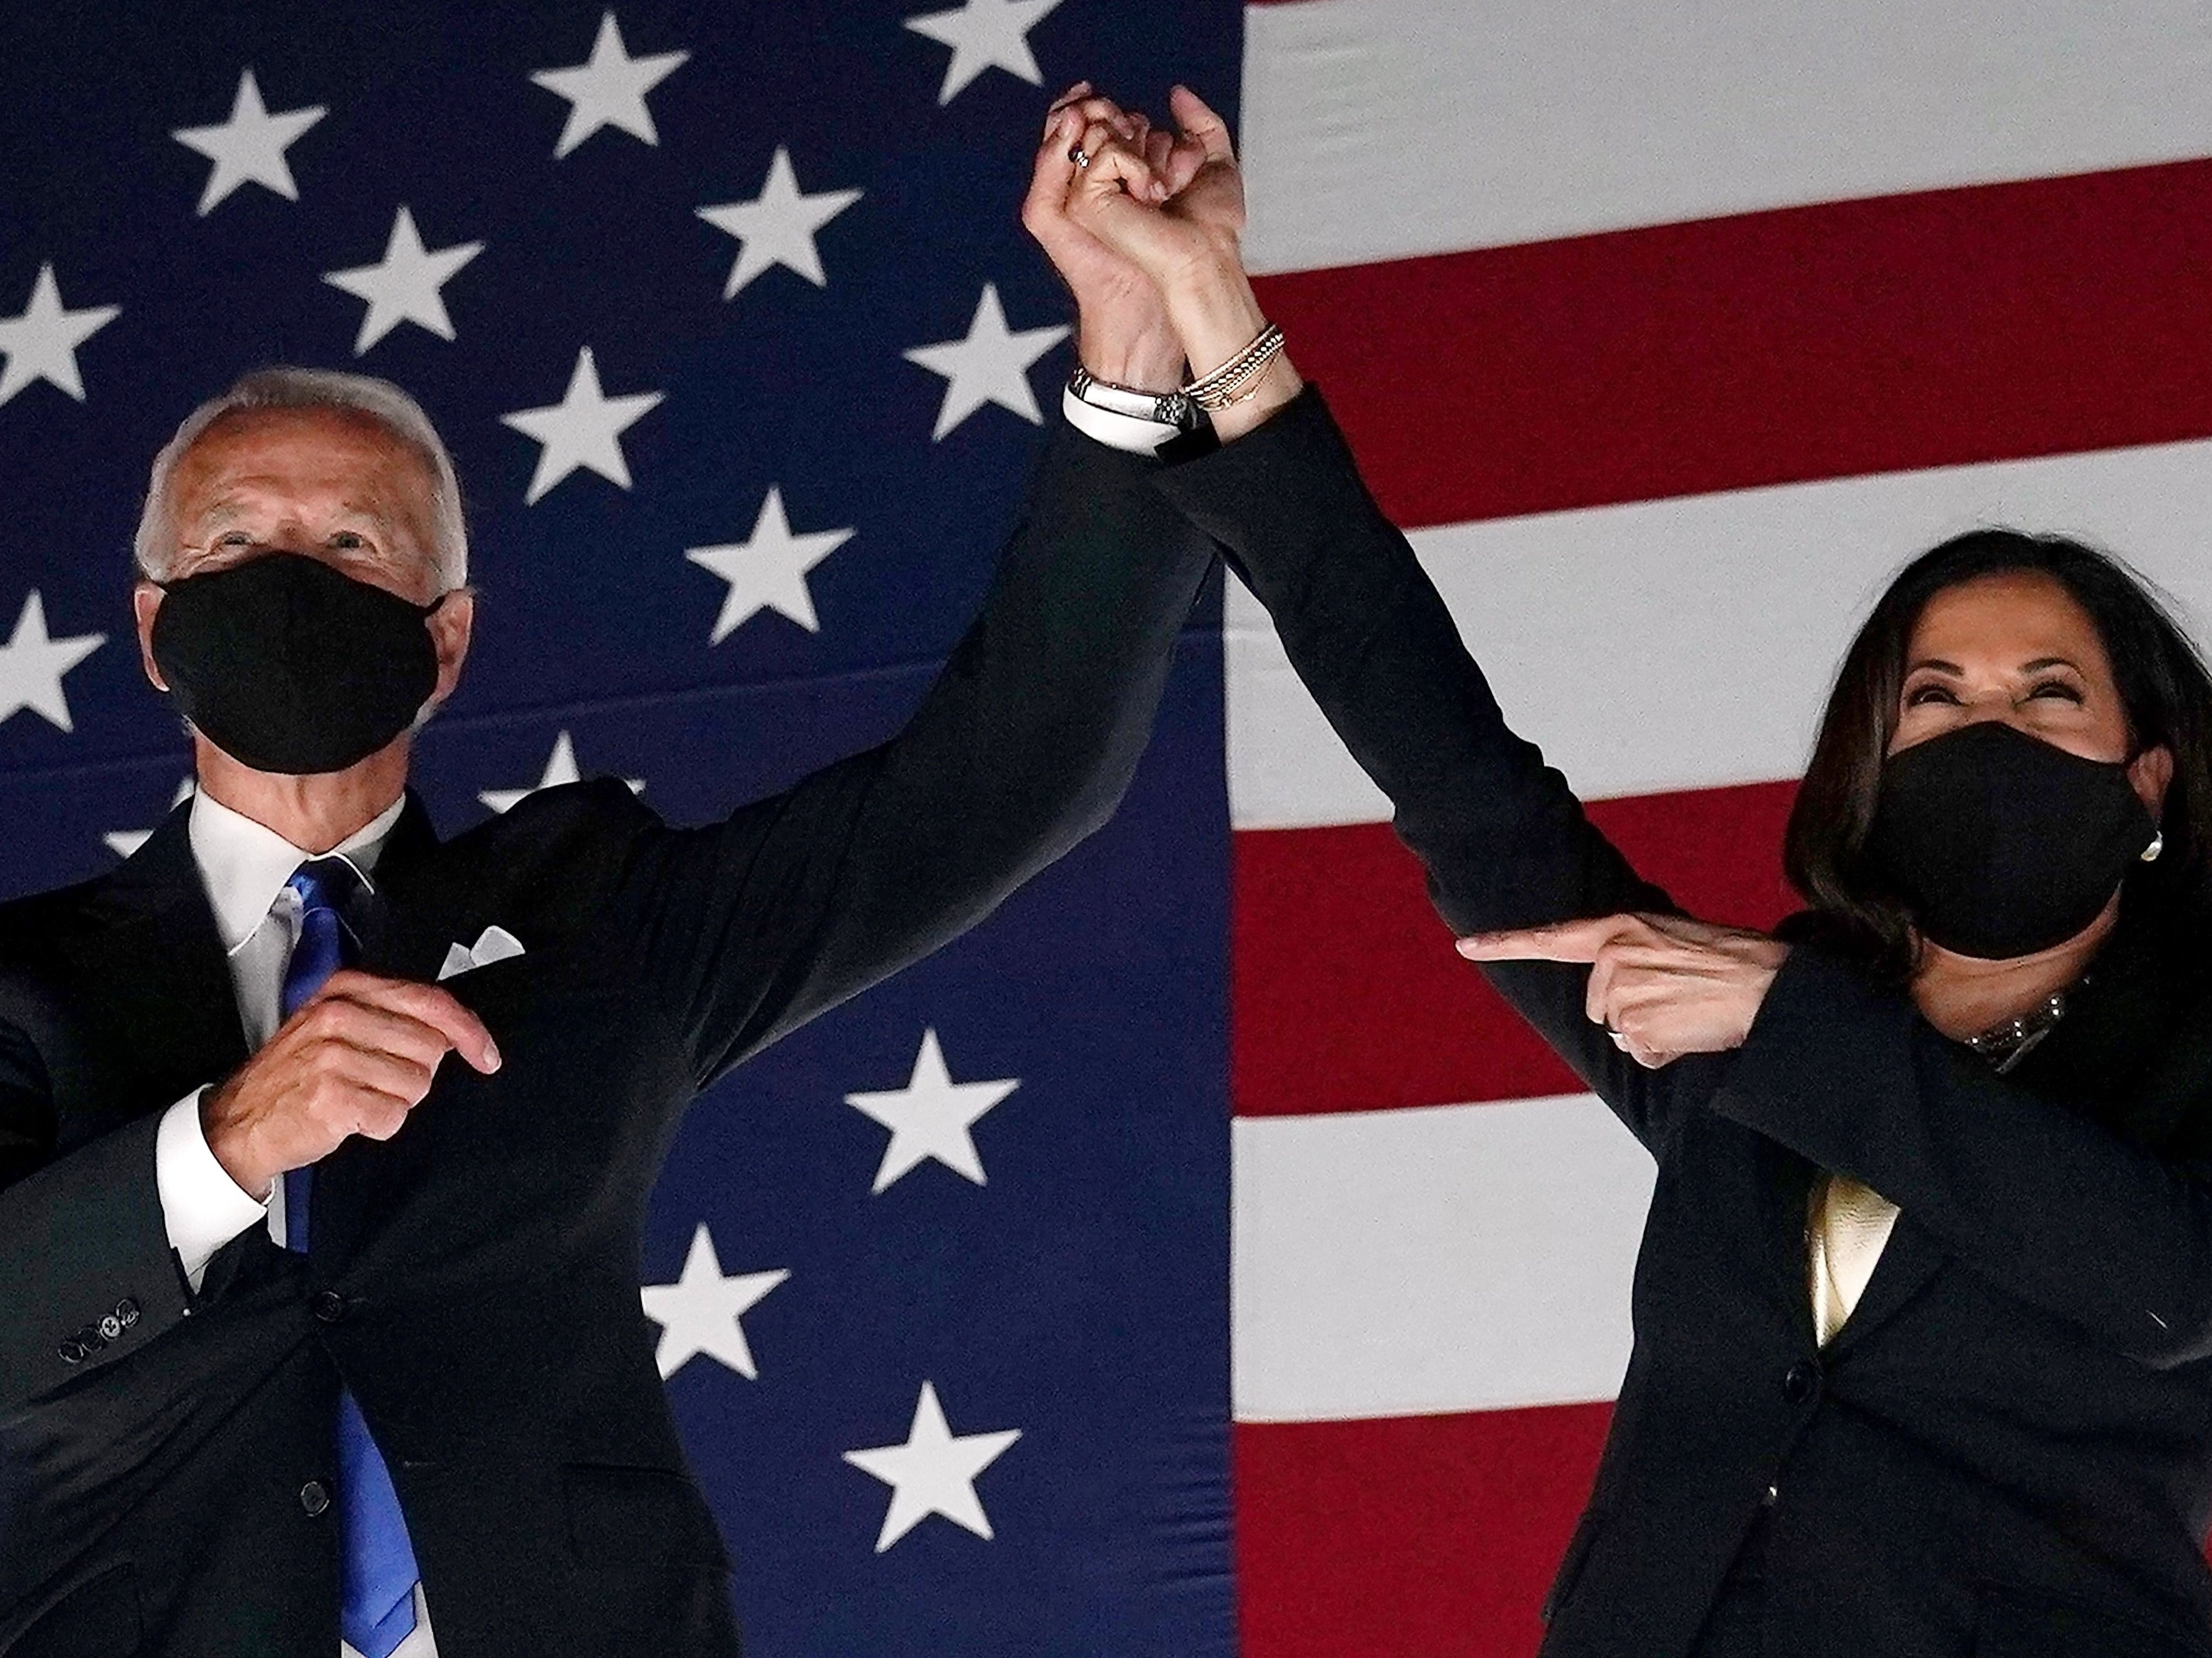 Biden inauguration concert: Who is performing and what time is the show? - The Independent